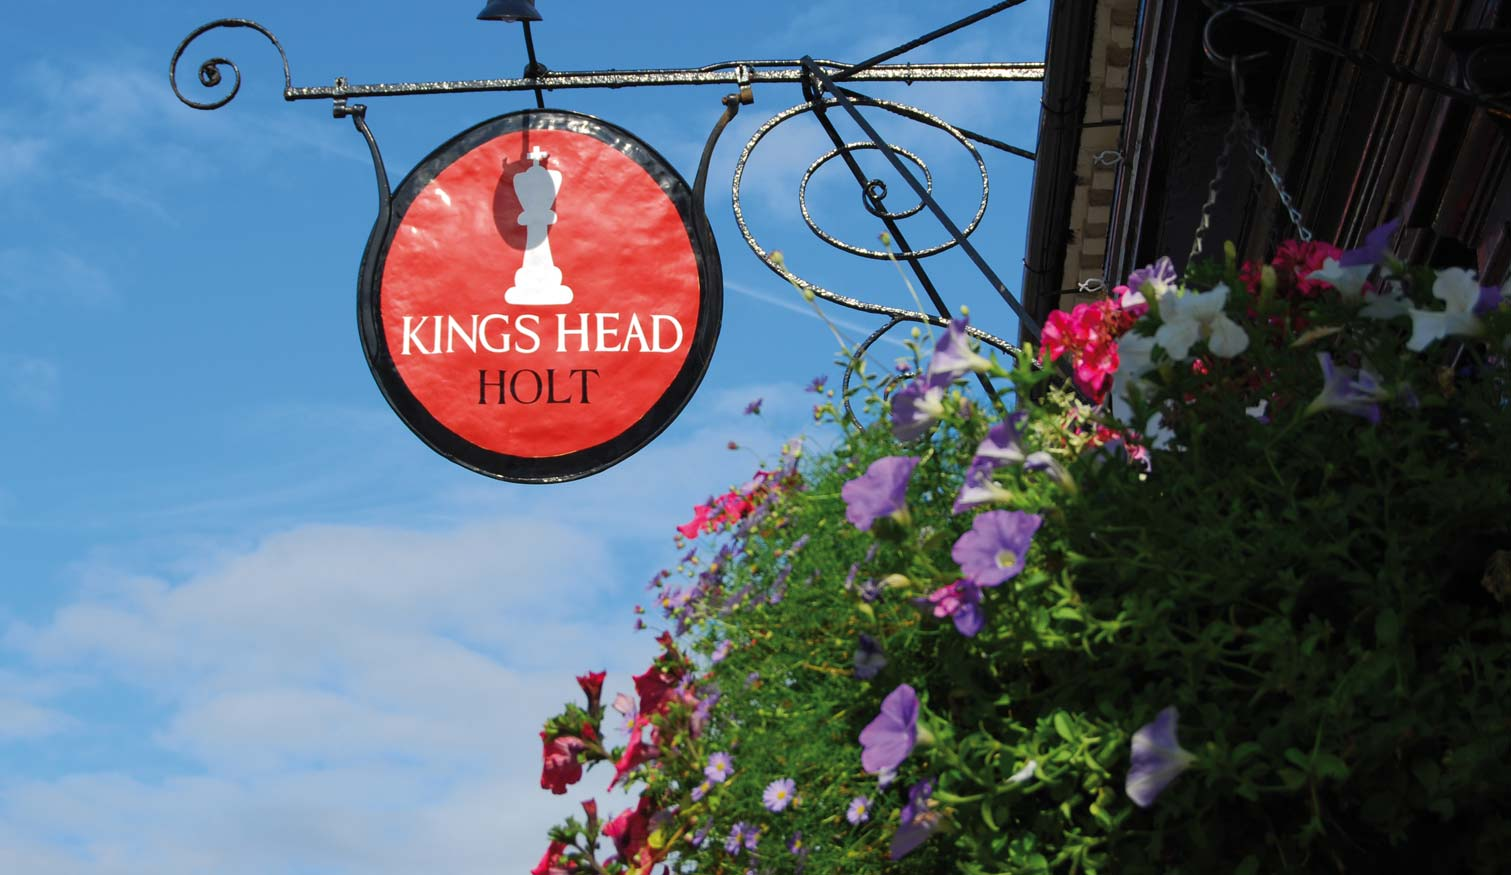 King's Head, Holt